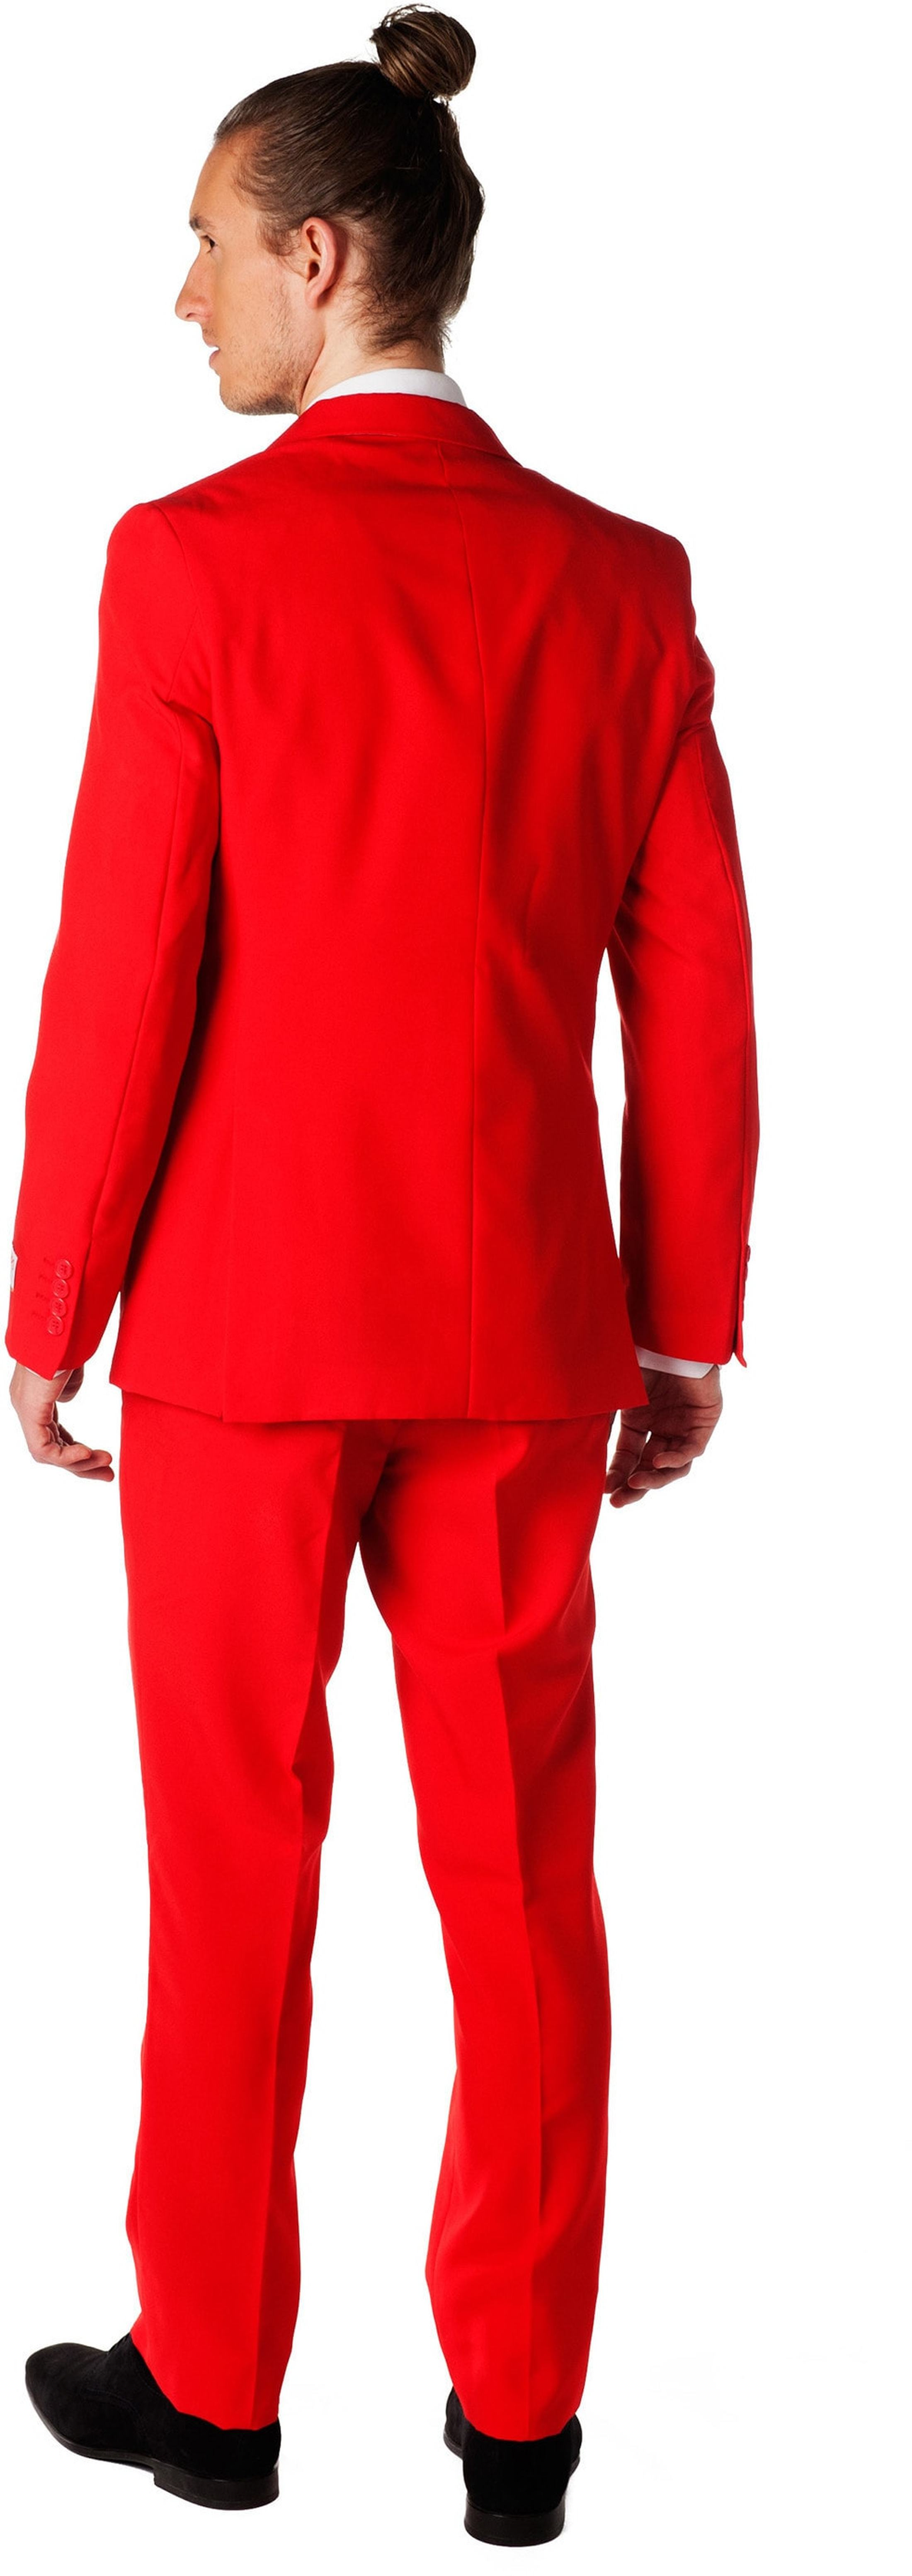 OppoSuits Red Devil Suit foto 1